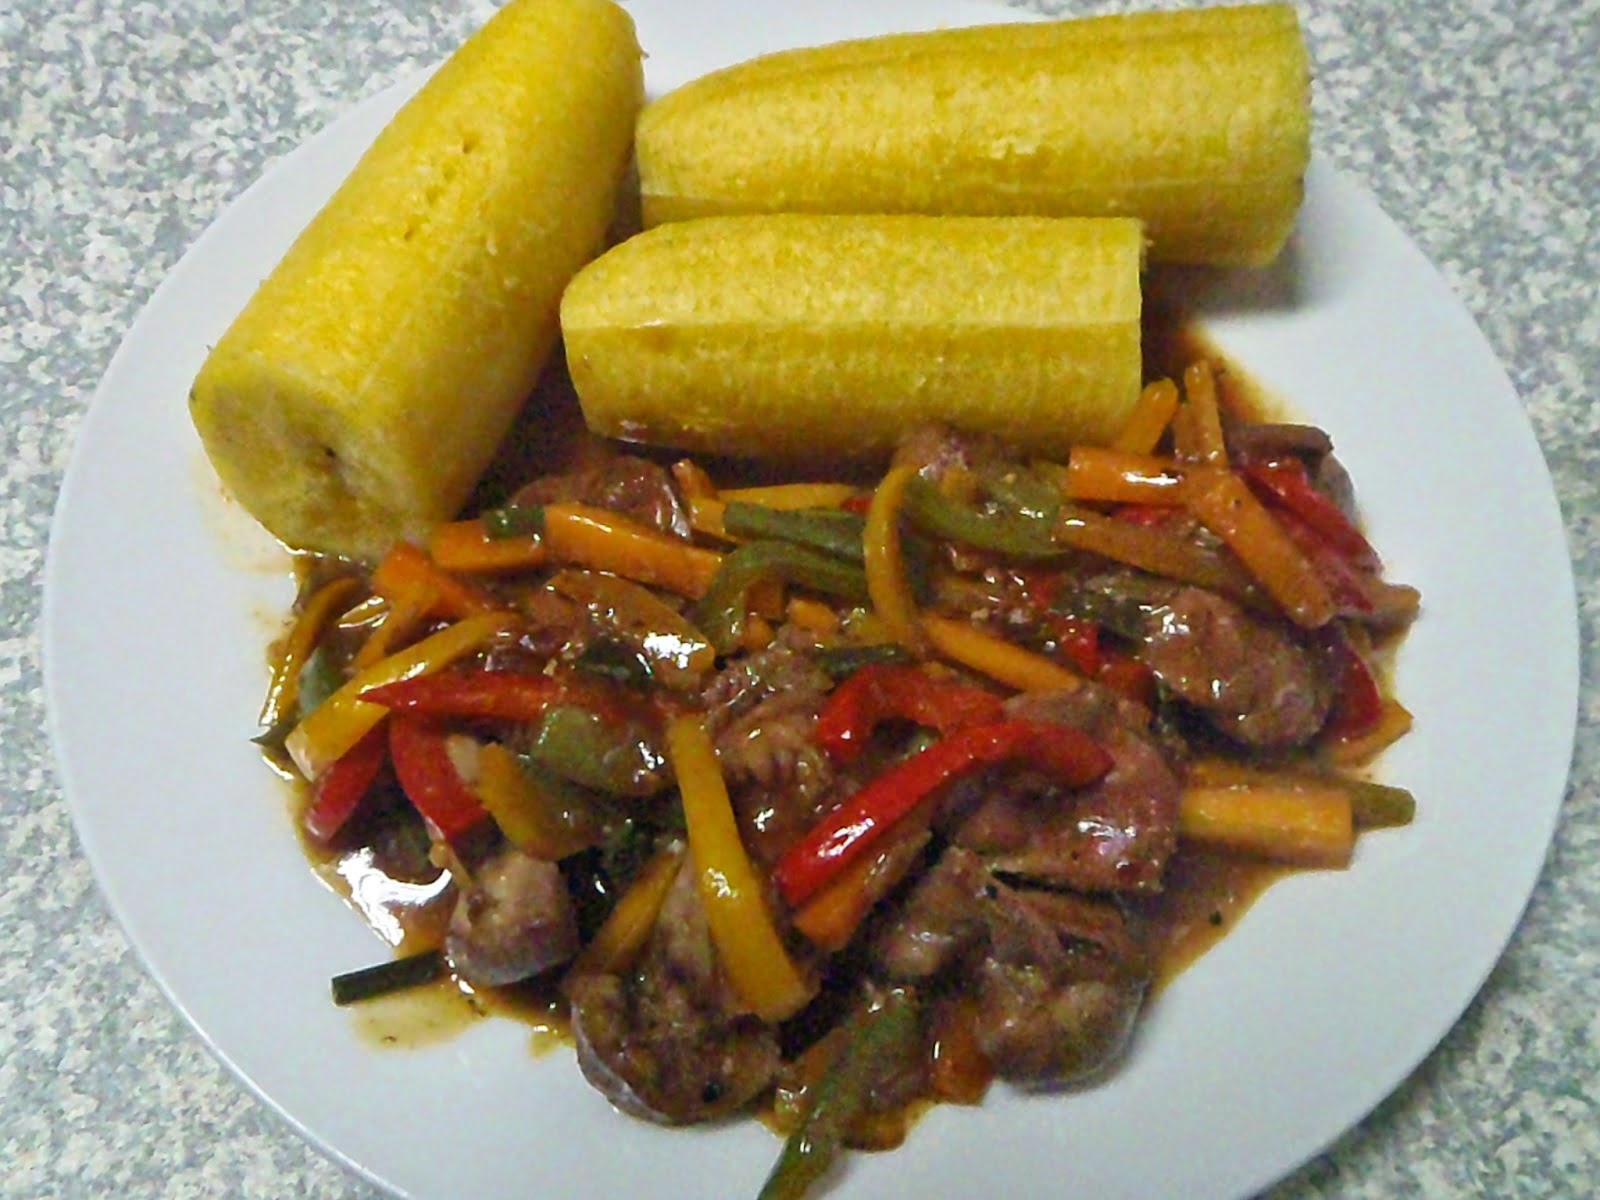 Plantain and Gizzard Stir-Fry